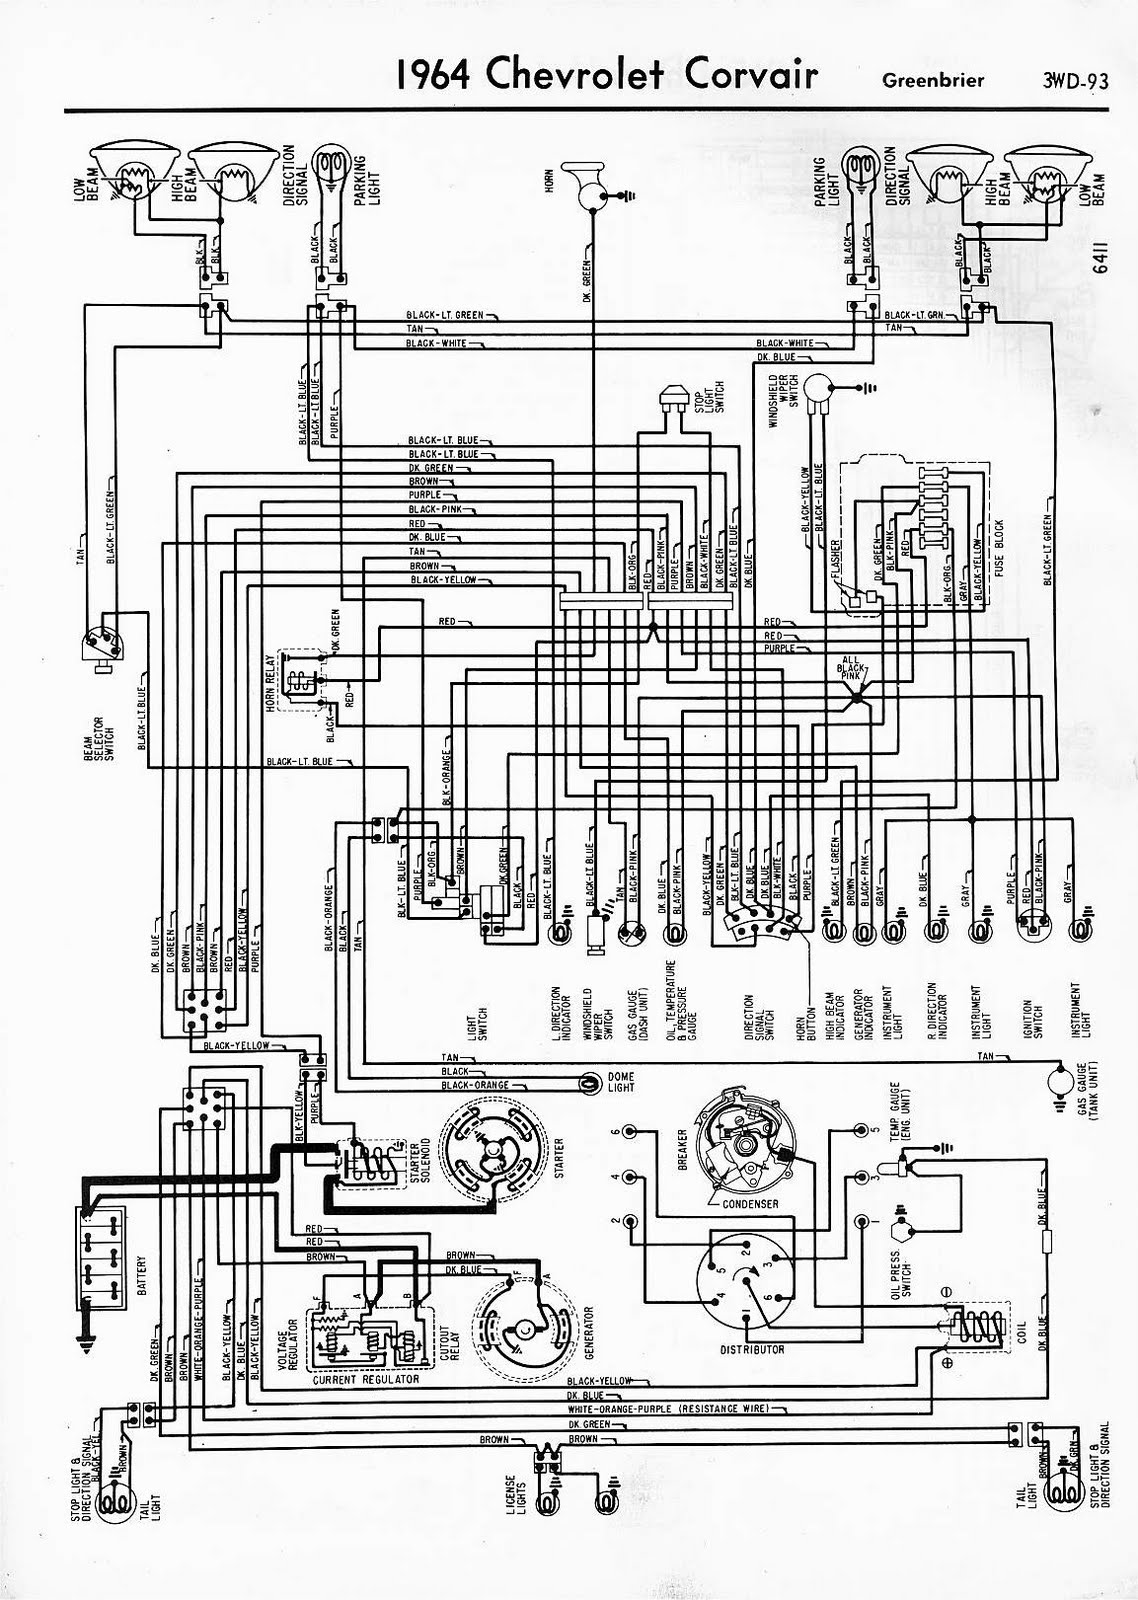 Free Auto Wiring Diagram For 1961 Ford Comet And Falcon 6 All Models 1964 Chevrolet Corvair Greenbrier